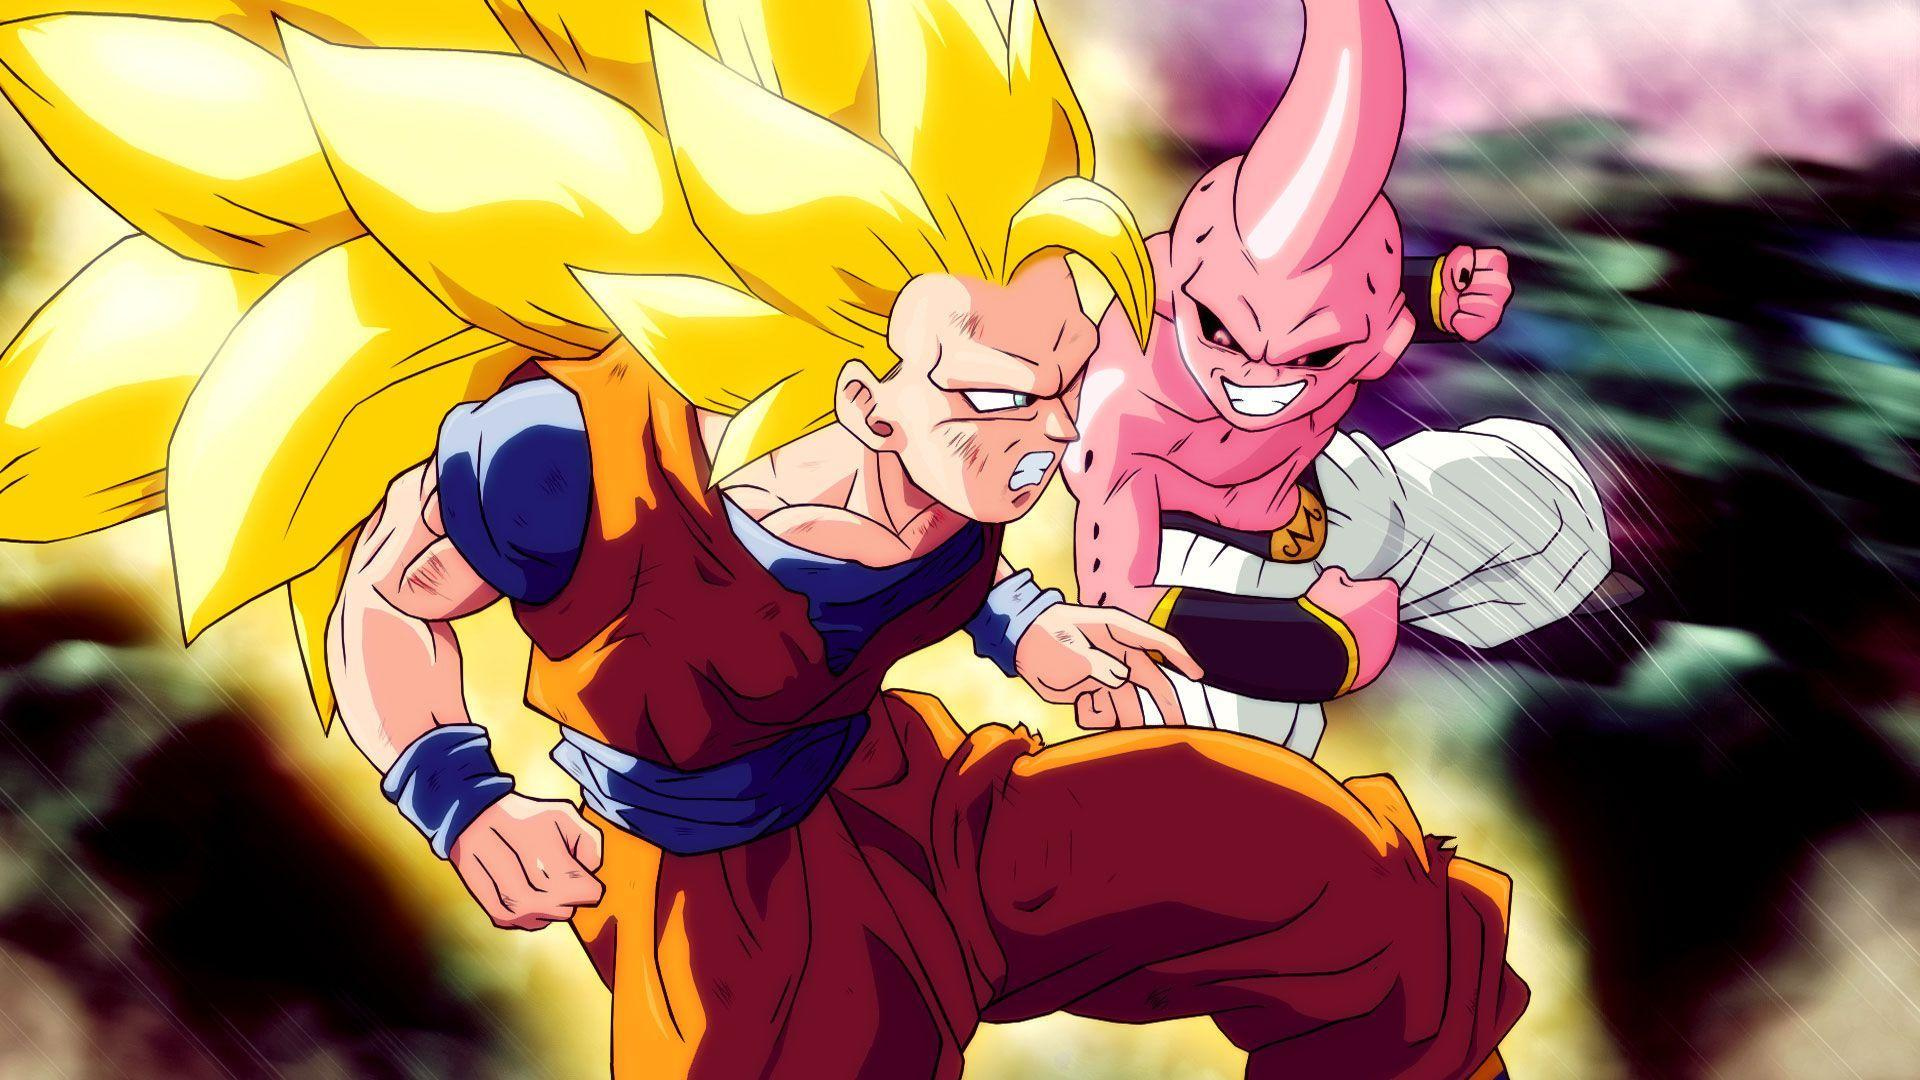 Goku Super Saiyan 3 vs Kid Buu